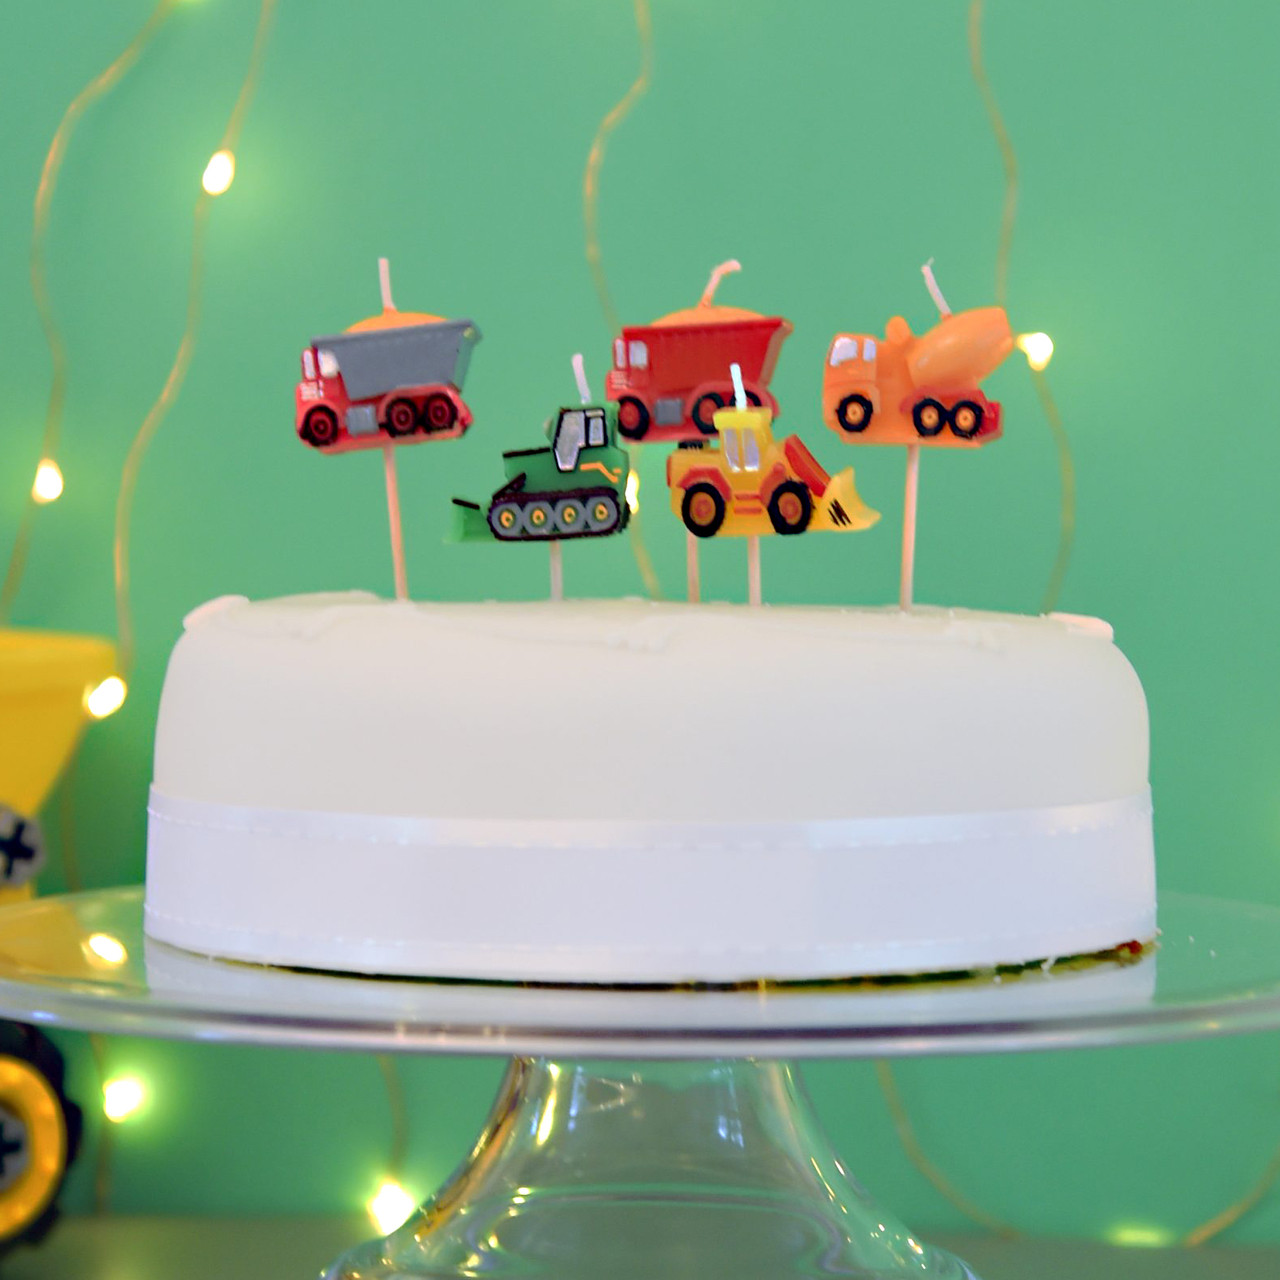 Wondrous Digger Construction Birthday Party Cake Candles Funny Birthday Cards Online Necthendildamsfinfo